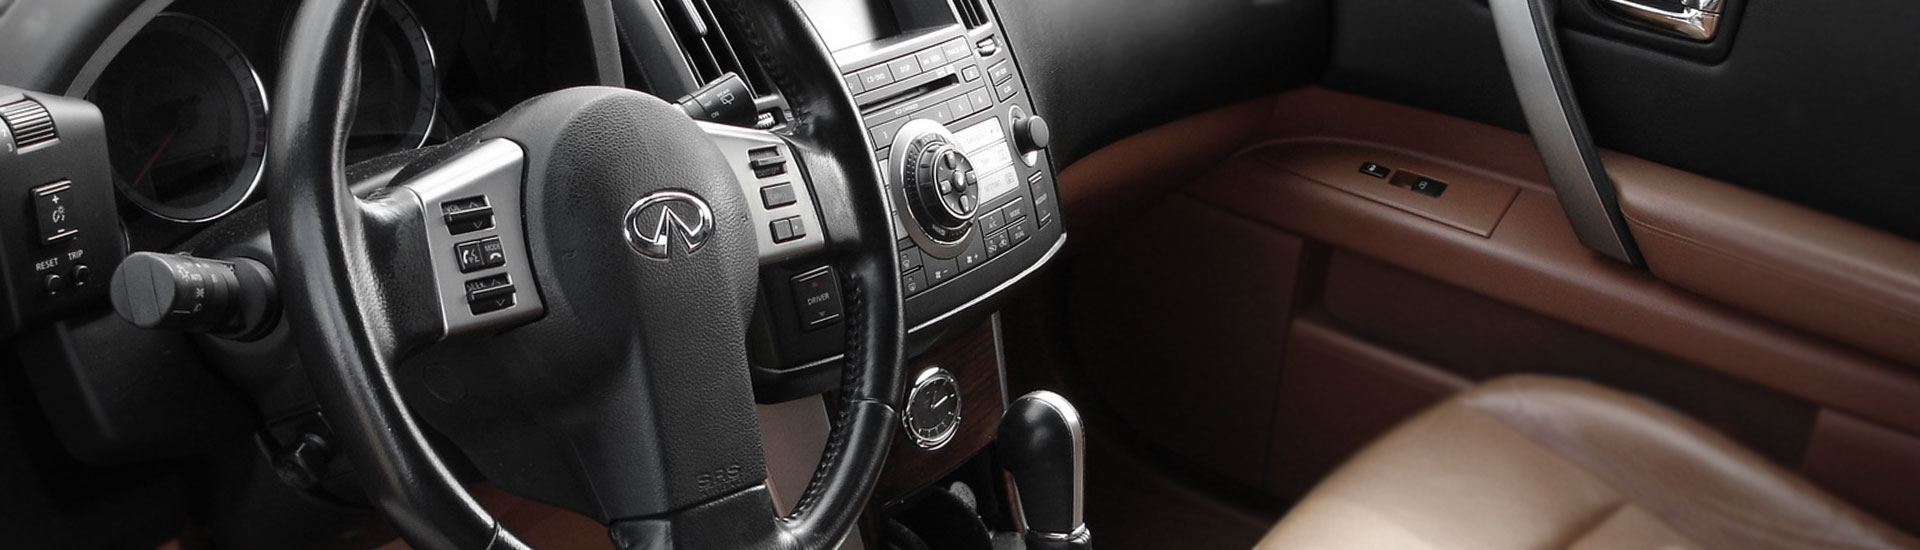 Infiniti FX45 Custom Dash Kits